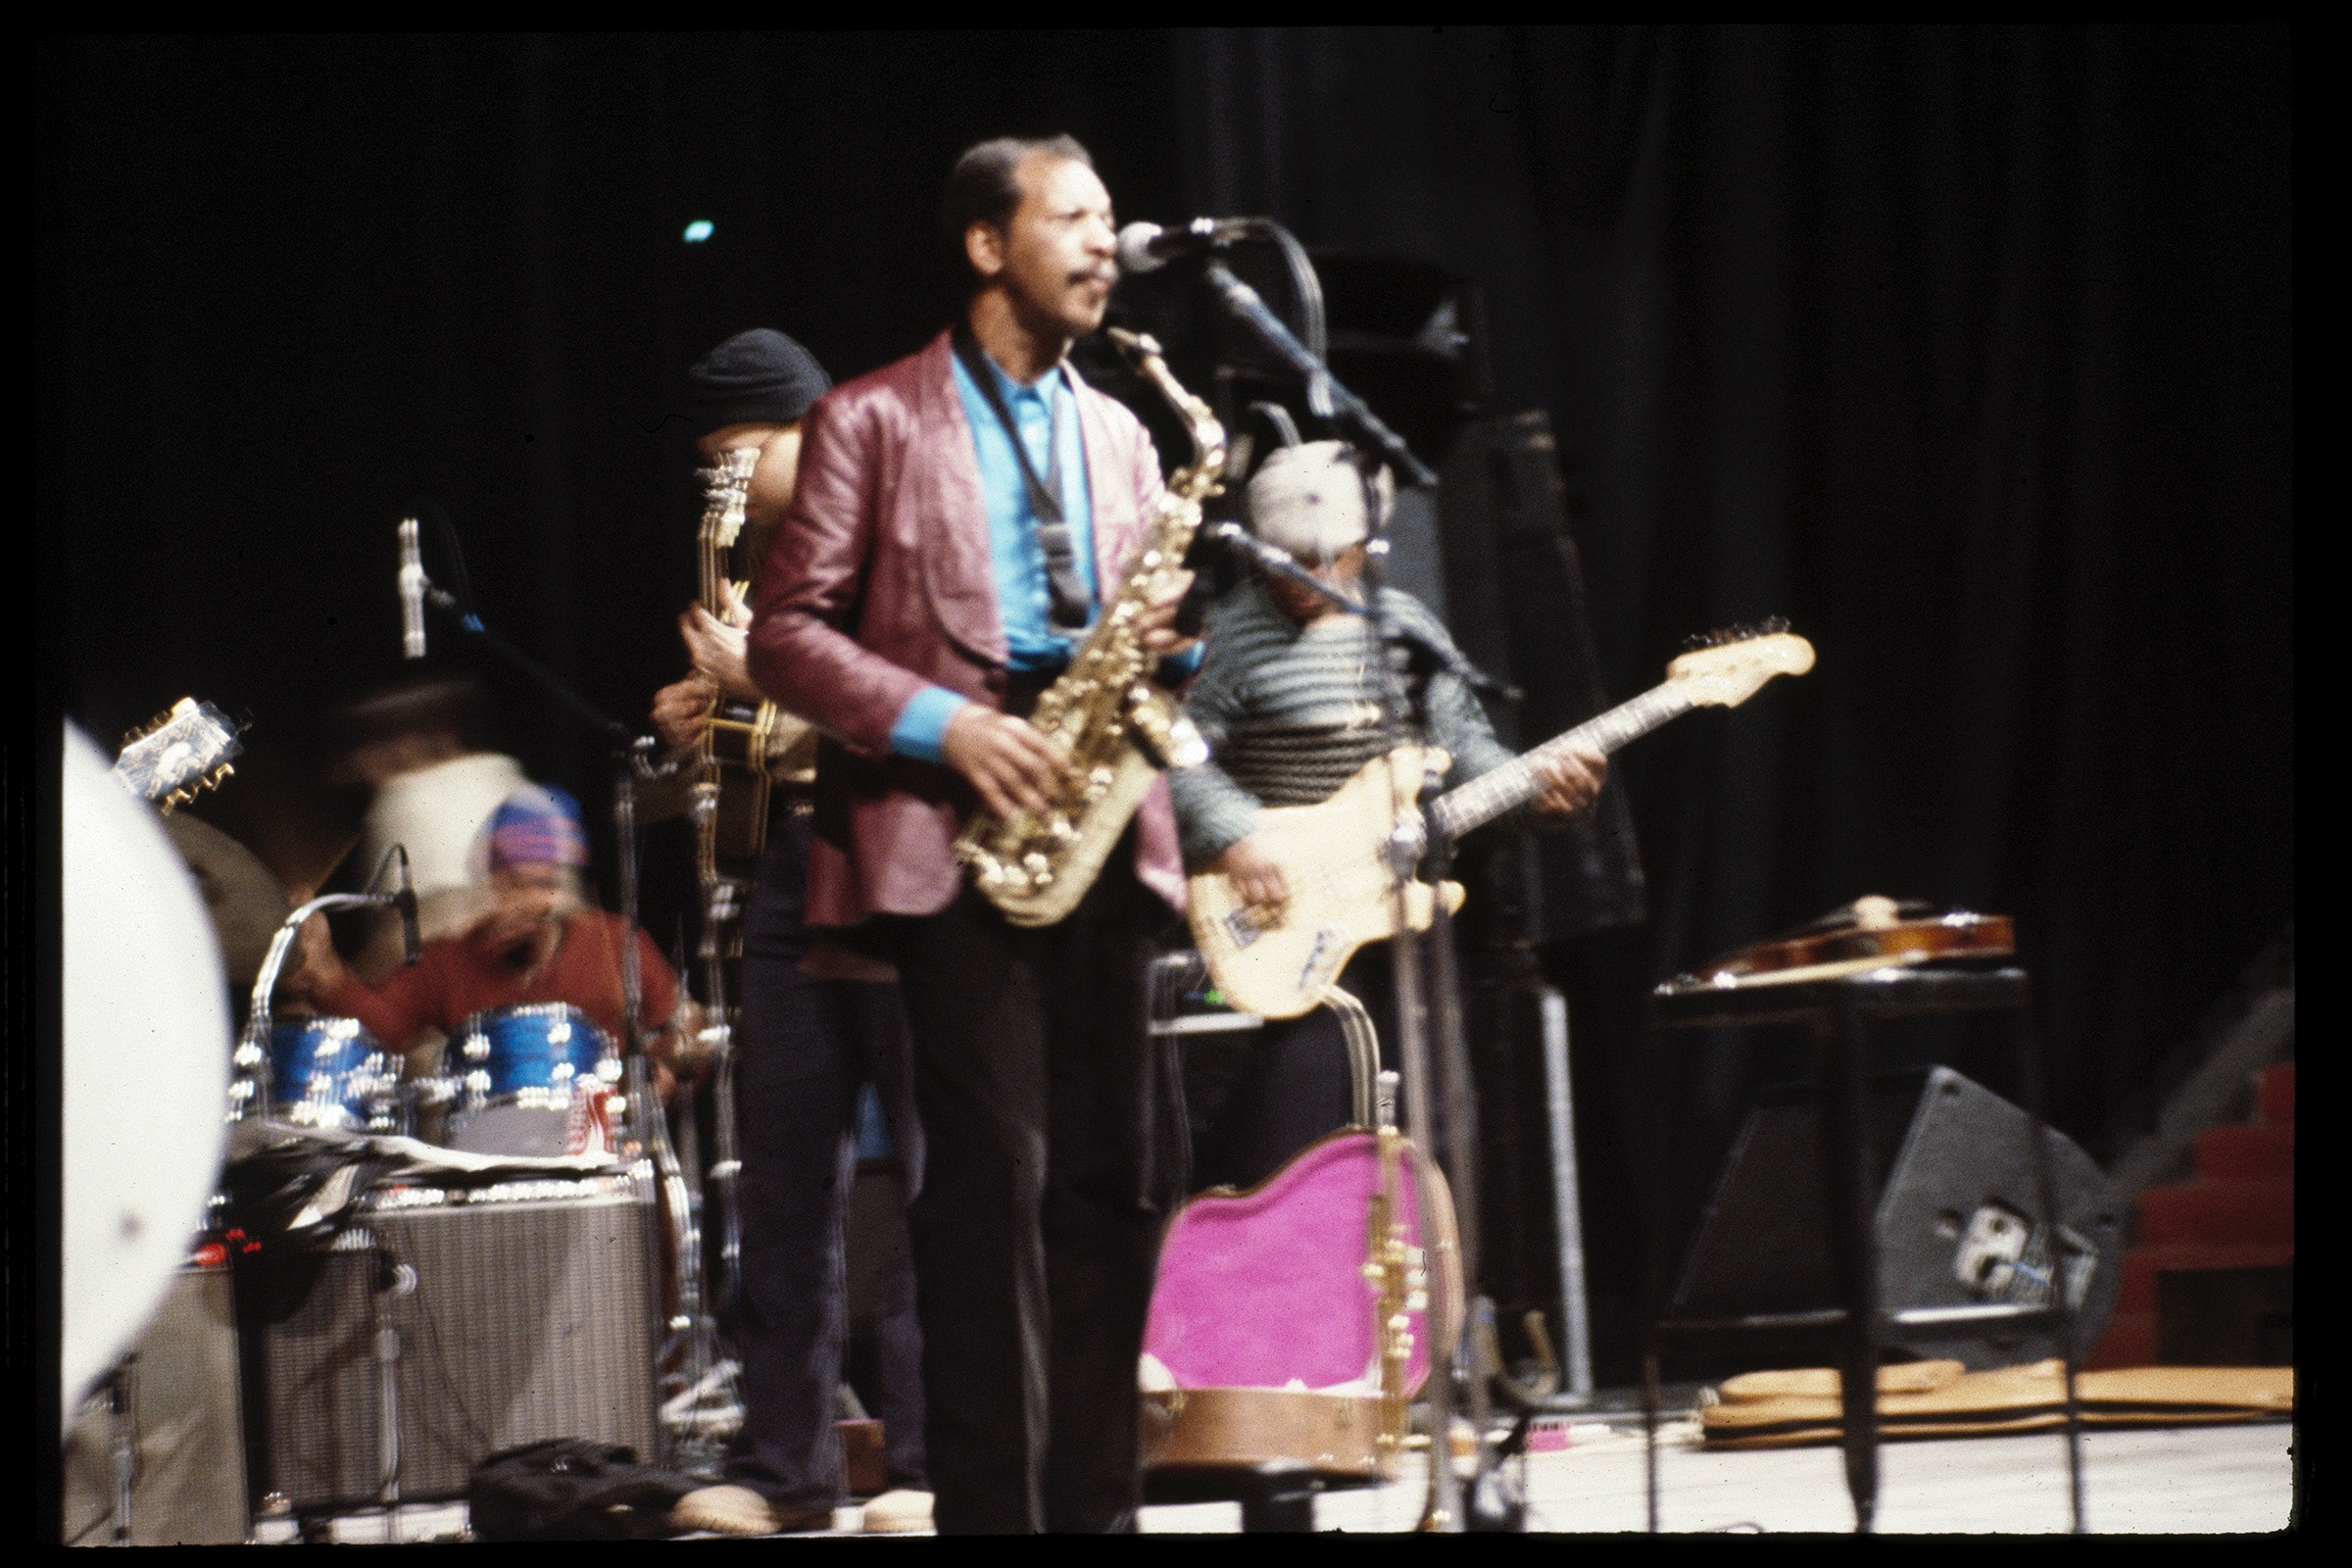 Ornette Coleman on stage